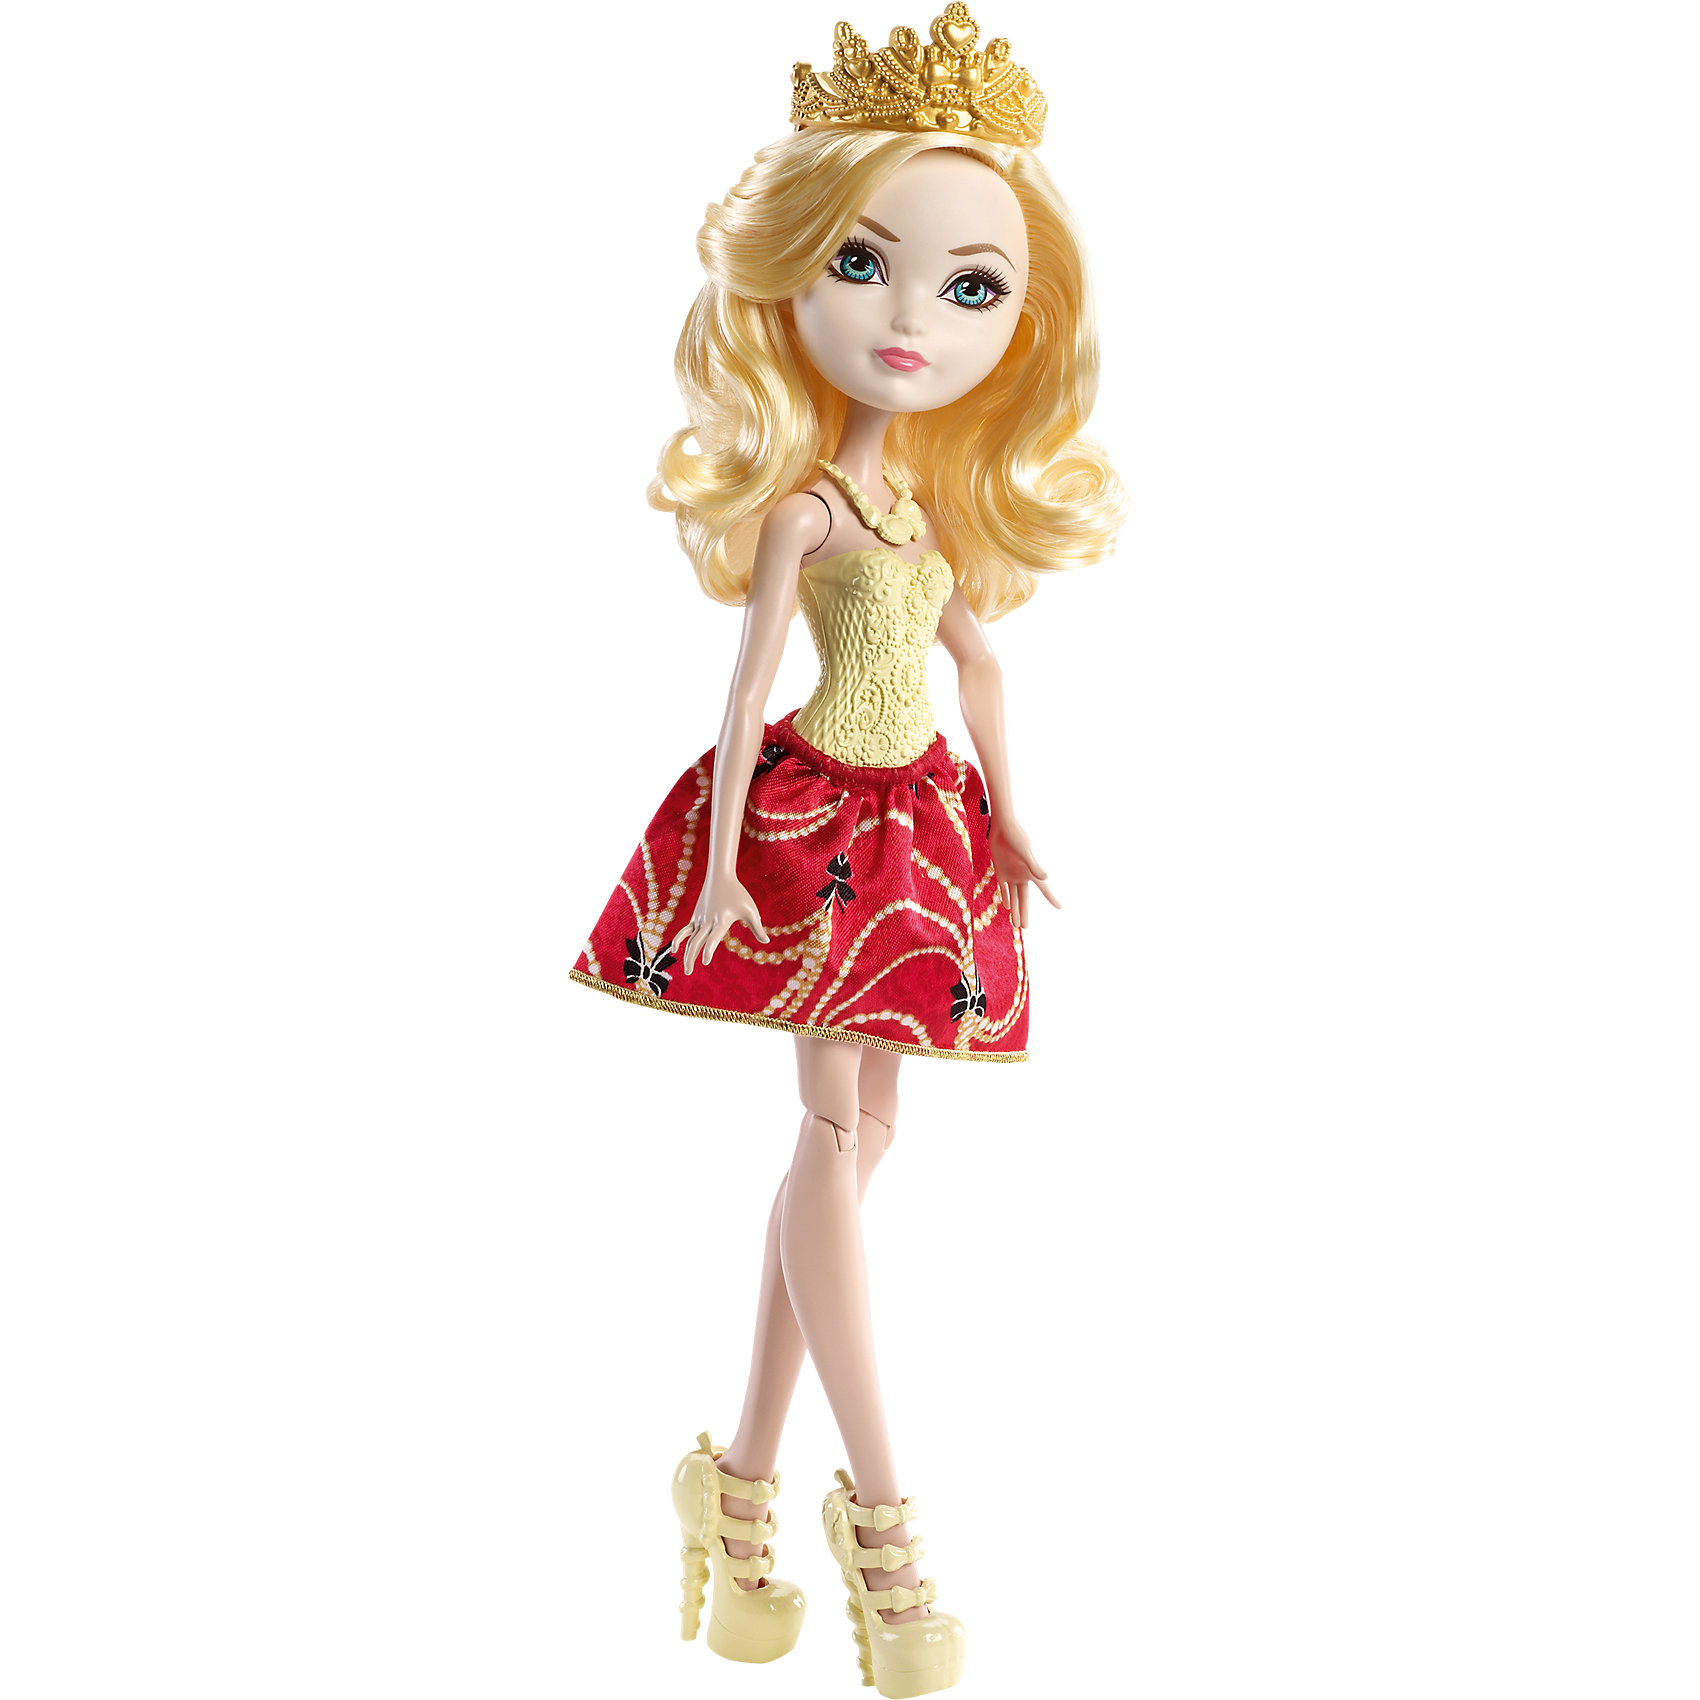 Mattel Кукла Эппл Уайт,  Ever After High mattel mattel кукла ever after high наследники и отступники банни бланк